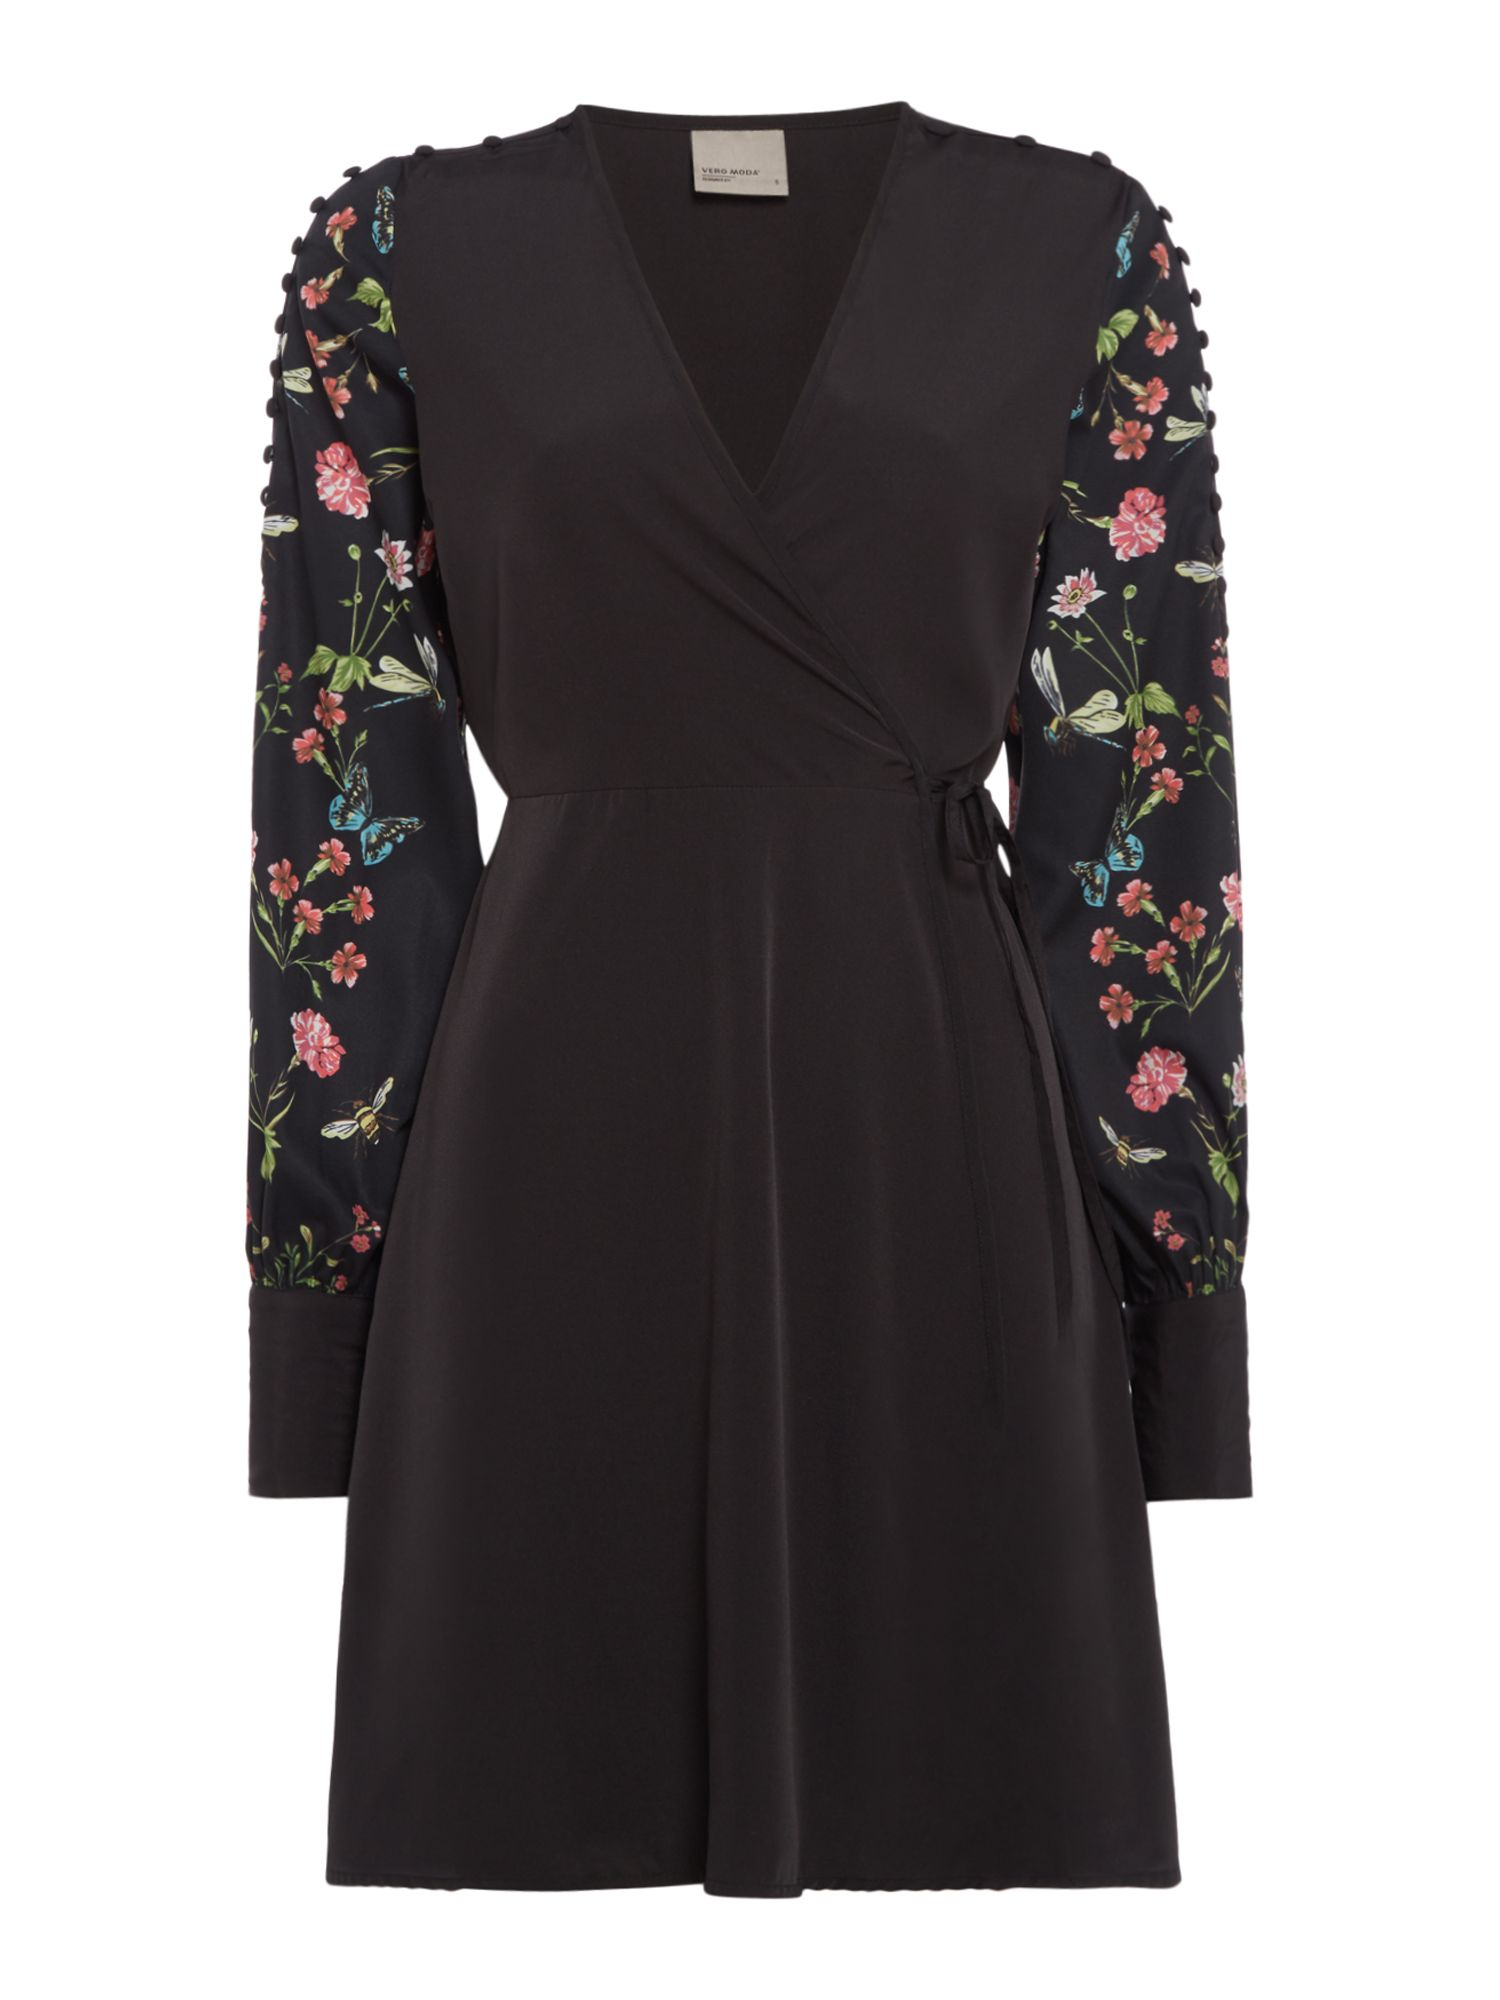 Vero Moda Short sleeve floral high neck dress, Black